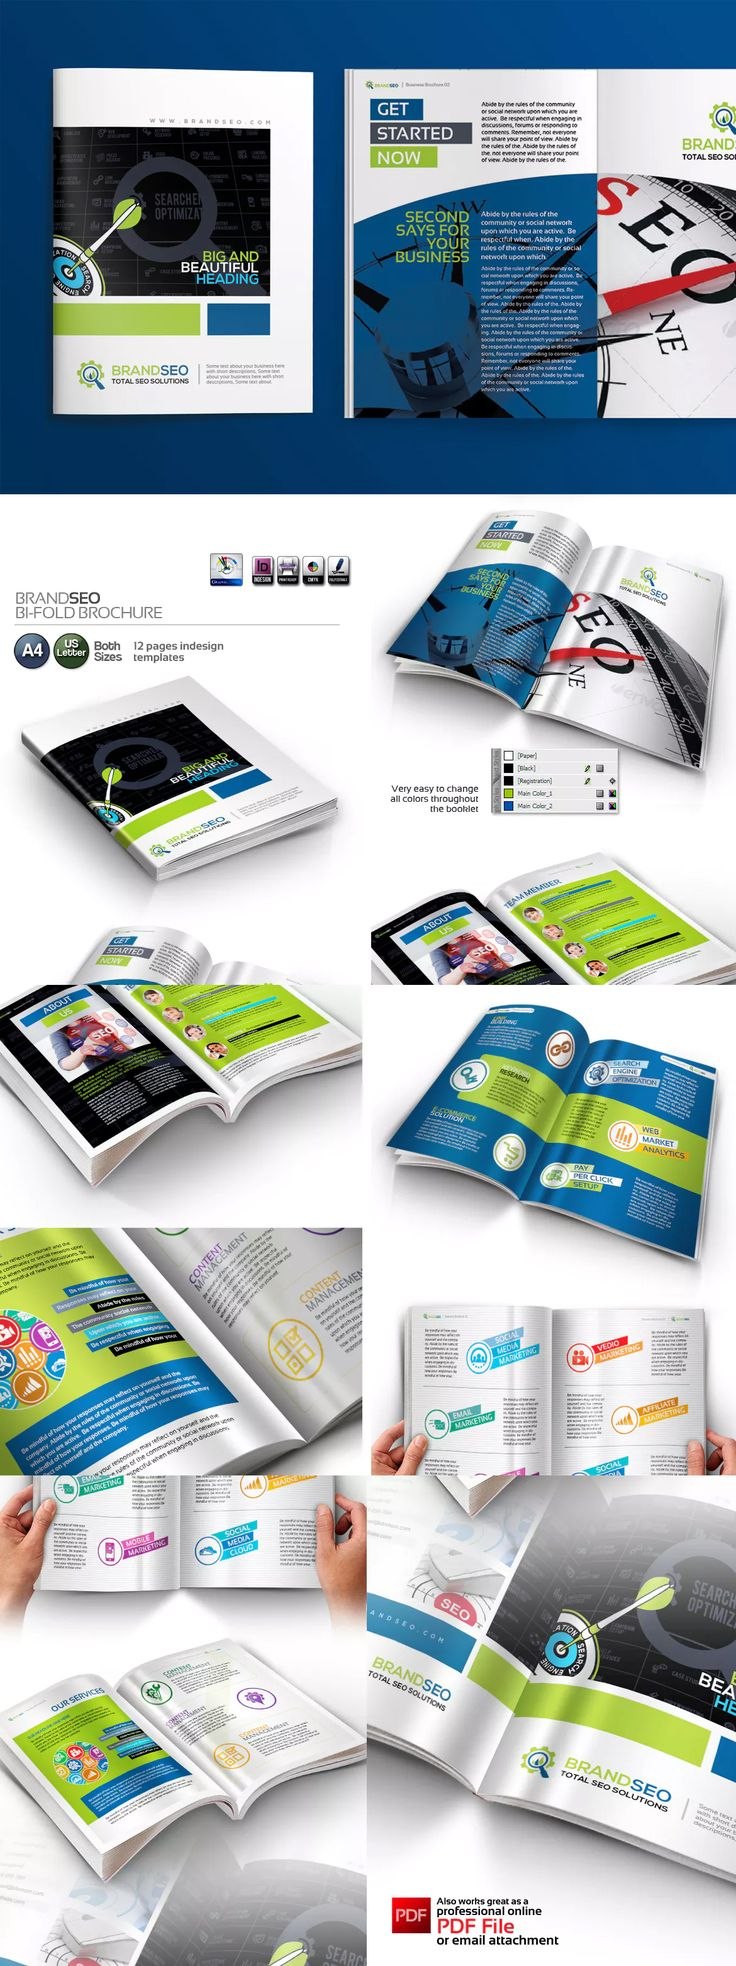 Best Brochure Templates Images On